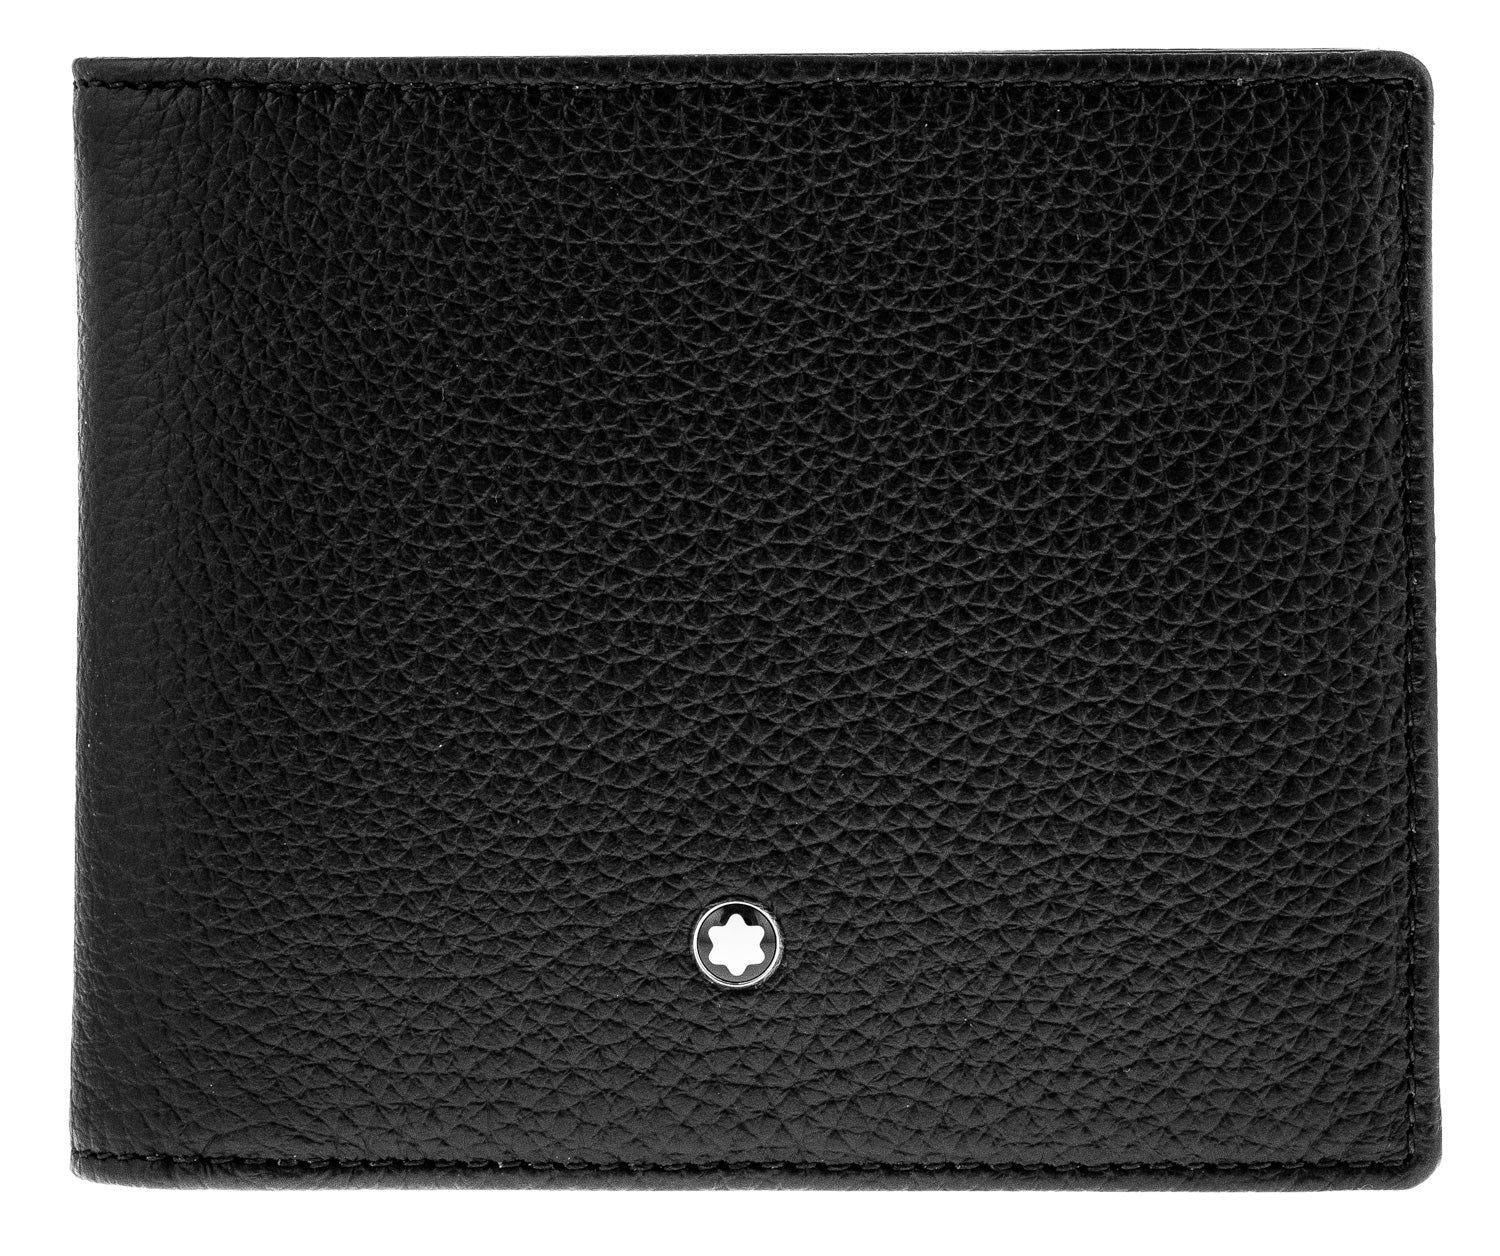 Montblanc Meisterstück Soft Grain 6cc Brown Leather Men Wallet 114460